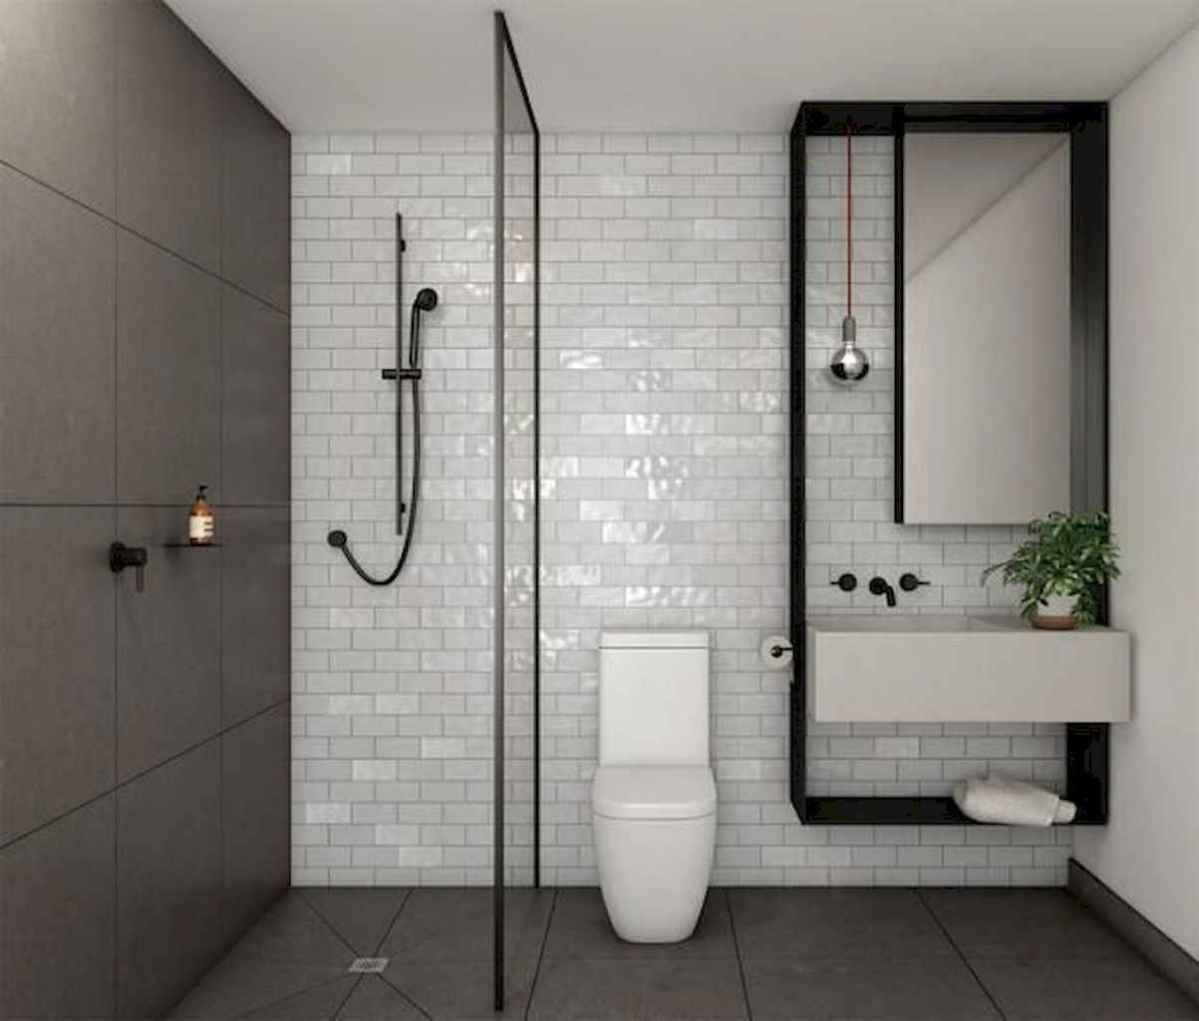 111 Best Small Bathroom Remodel On A Budget For First Apartment Ideas (65)